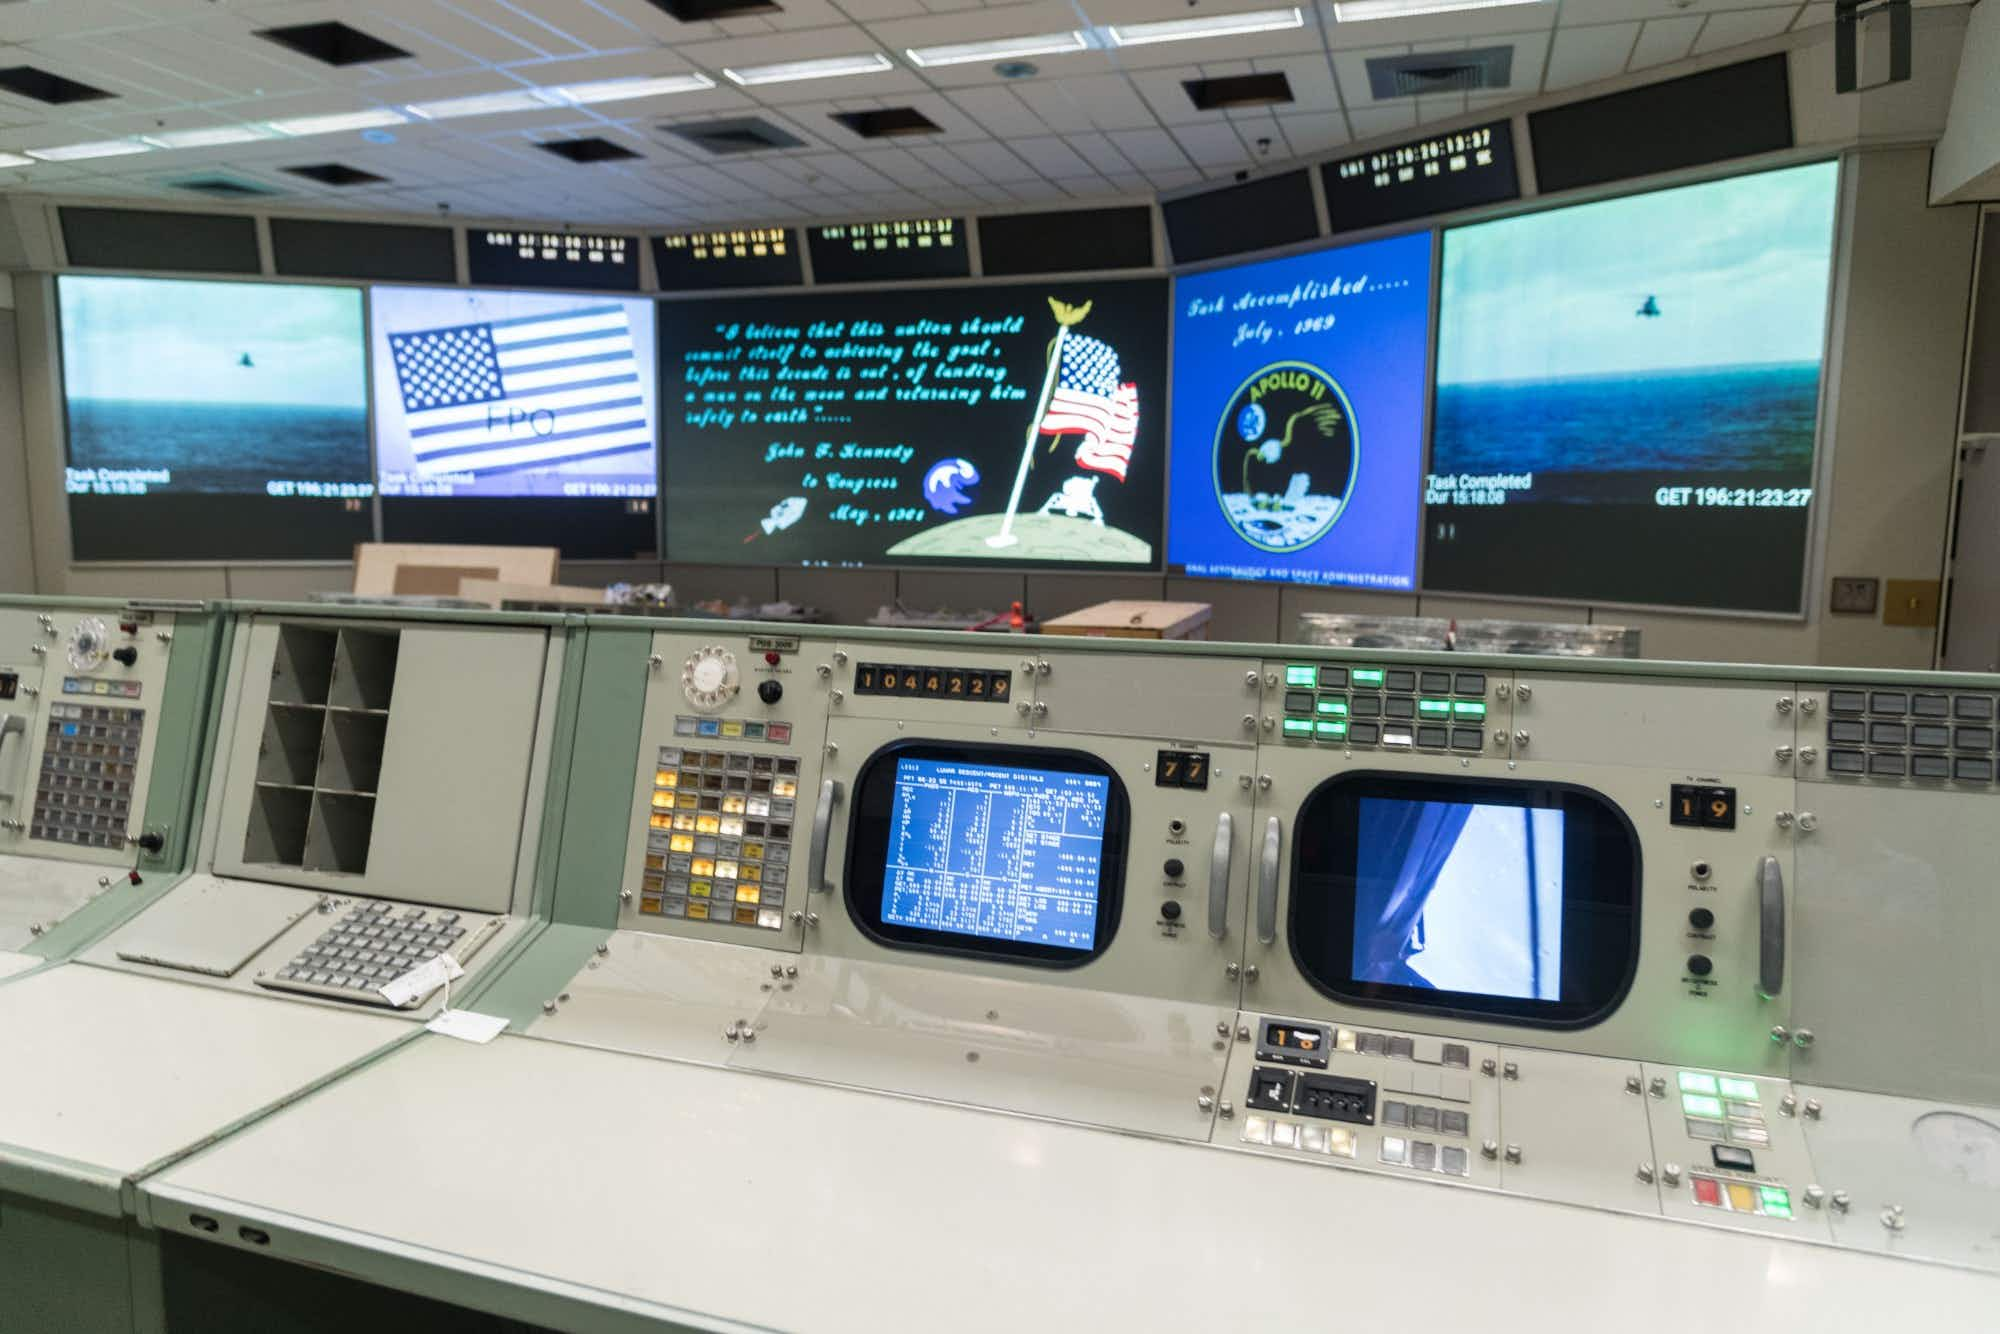 Houston's Mission Control Center restored in time for the lunar landing's 50th anniversary